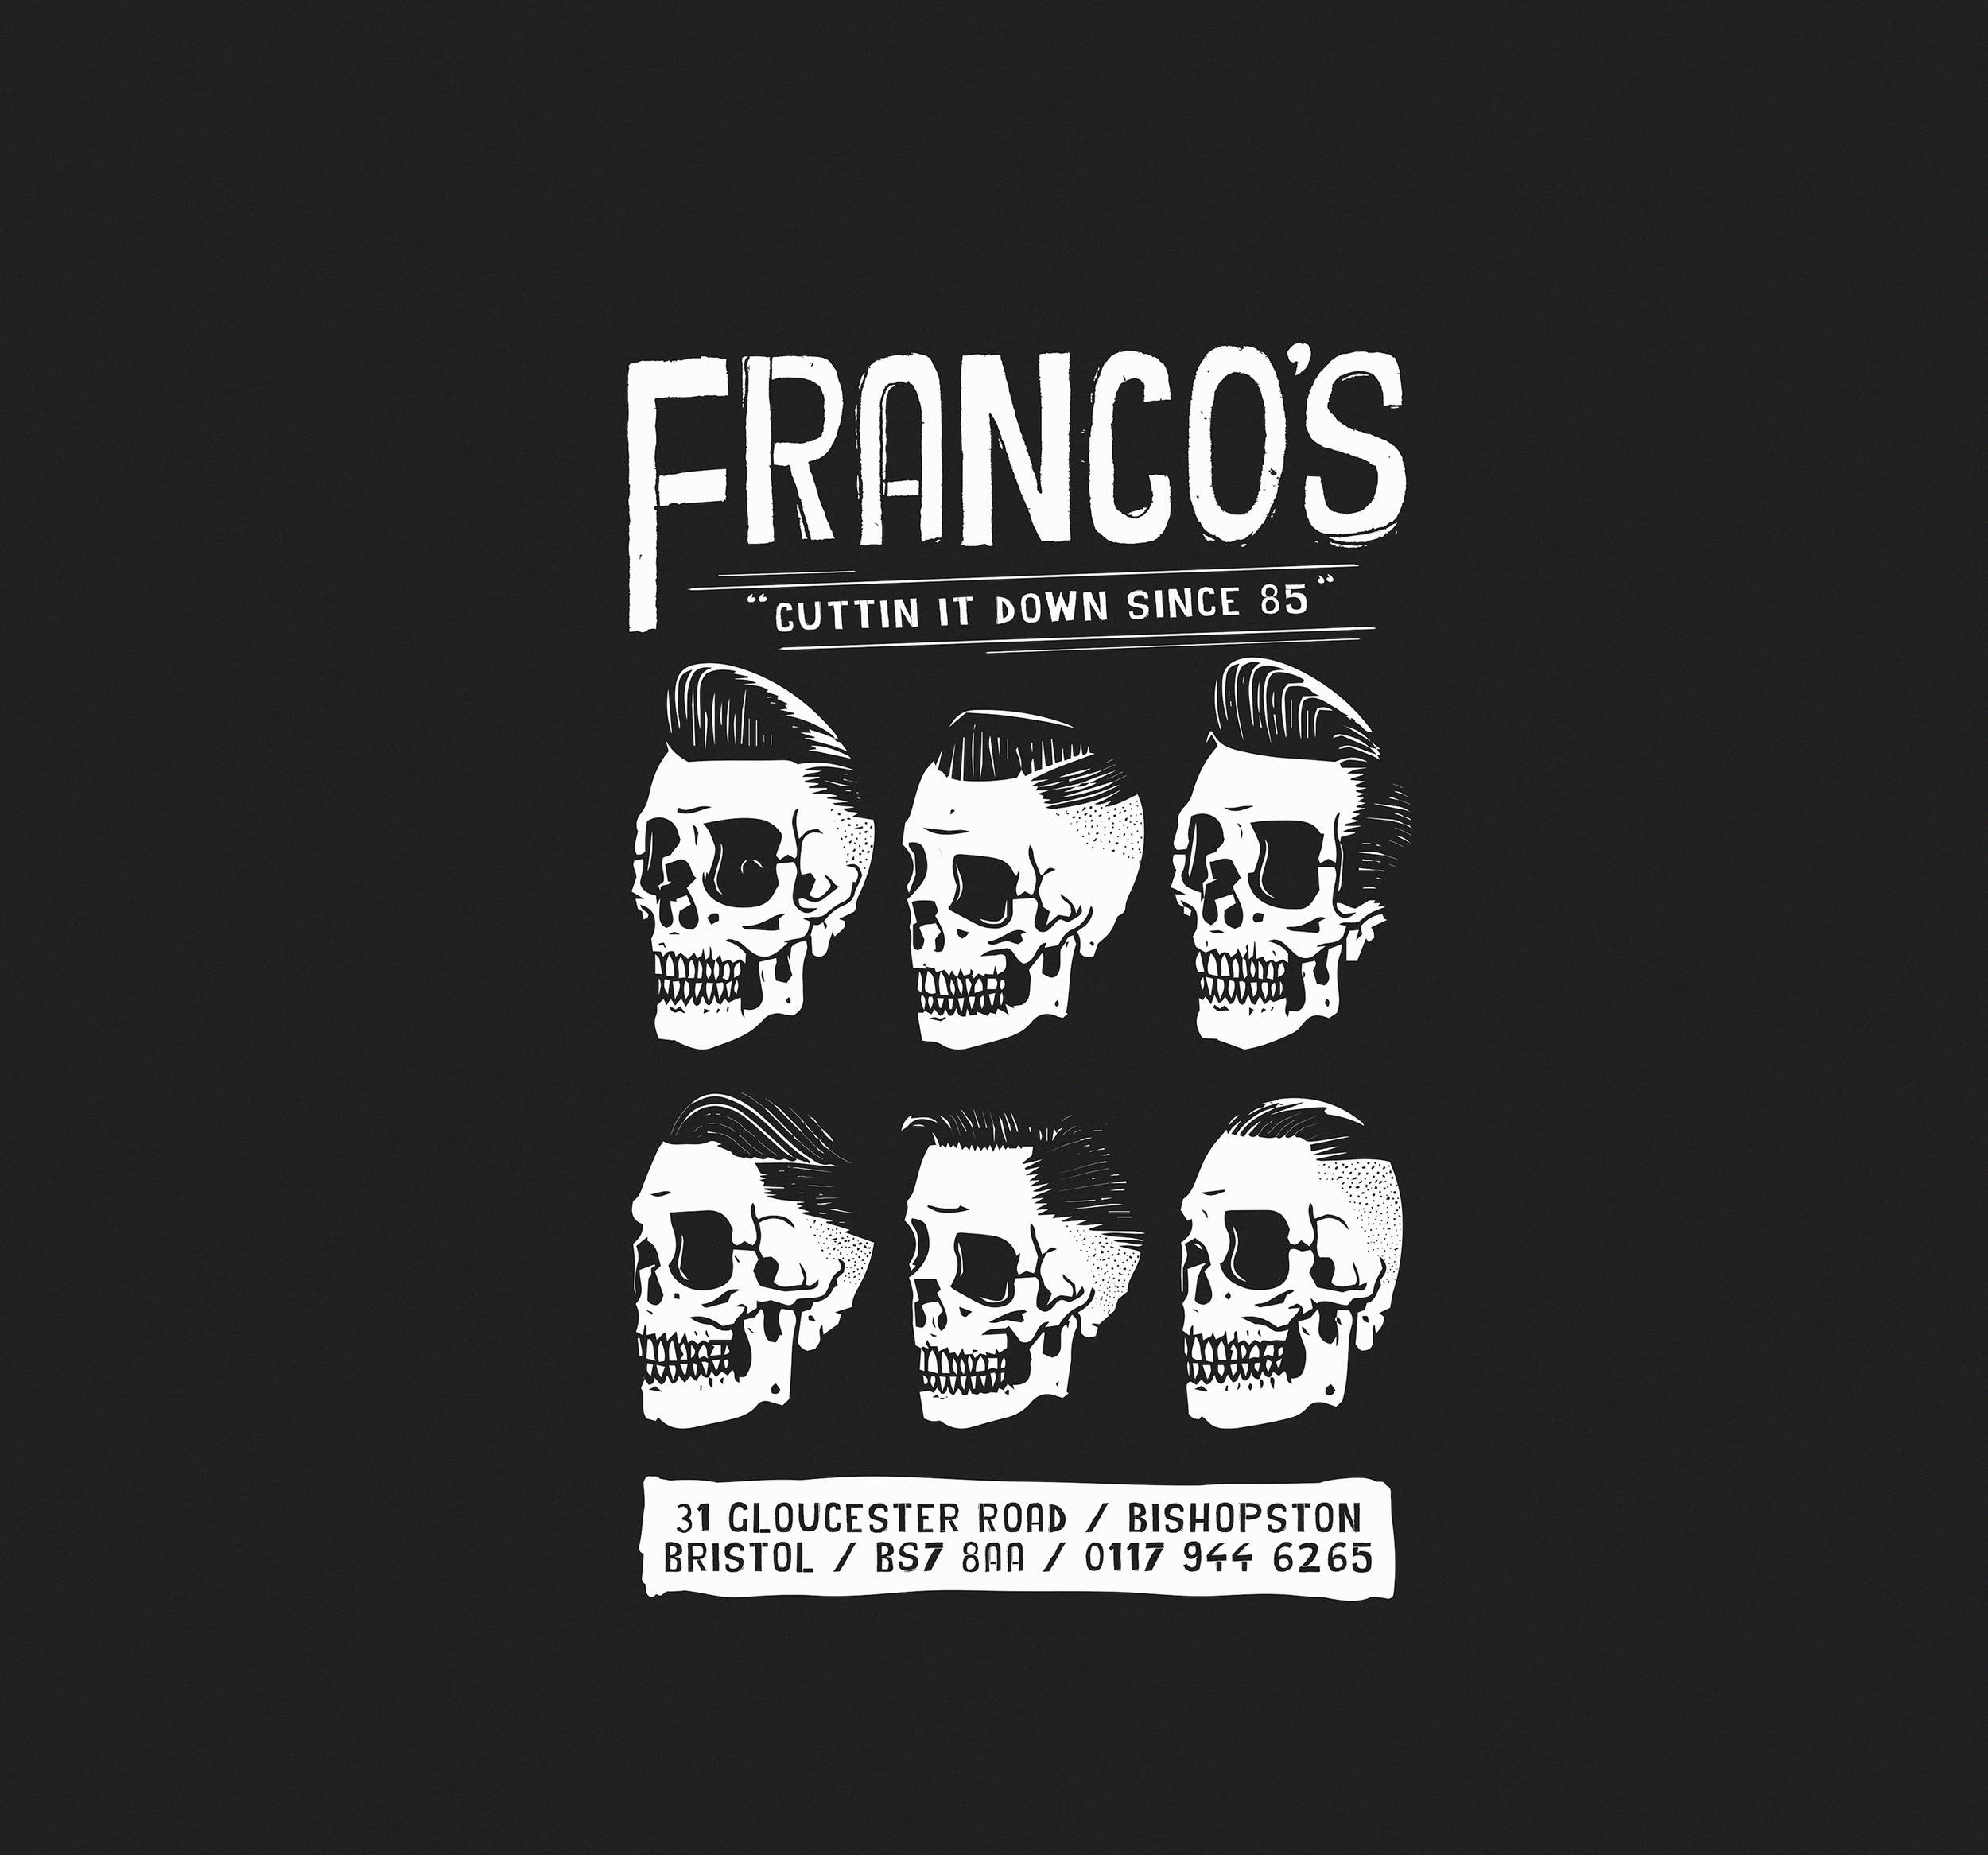 Fracos-t-shirt artwork1.jpg